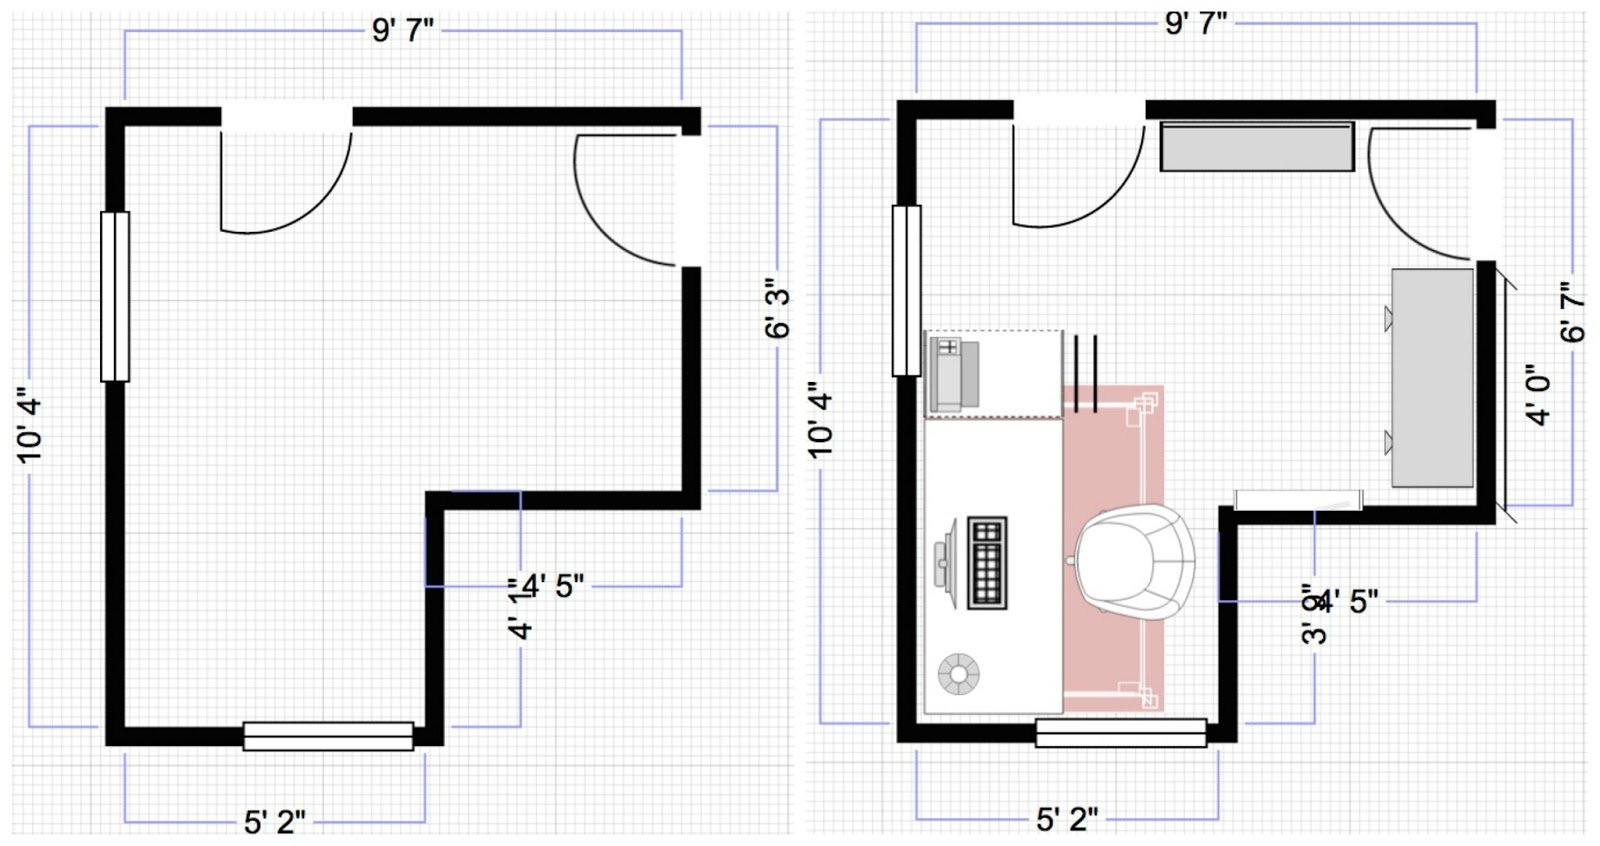 House Planning: My Office (my Favorite Room!)